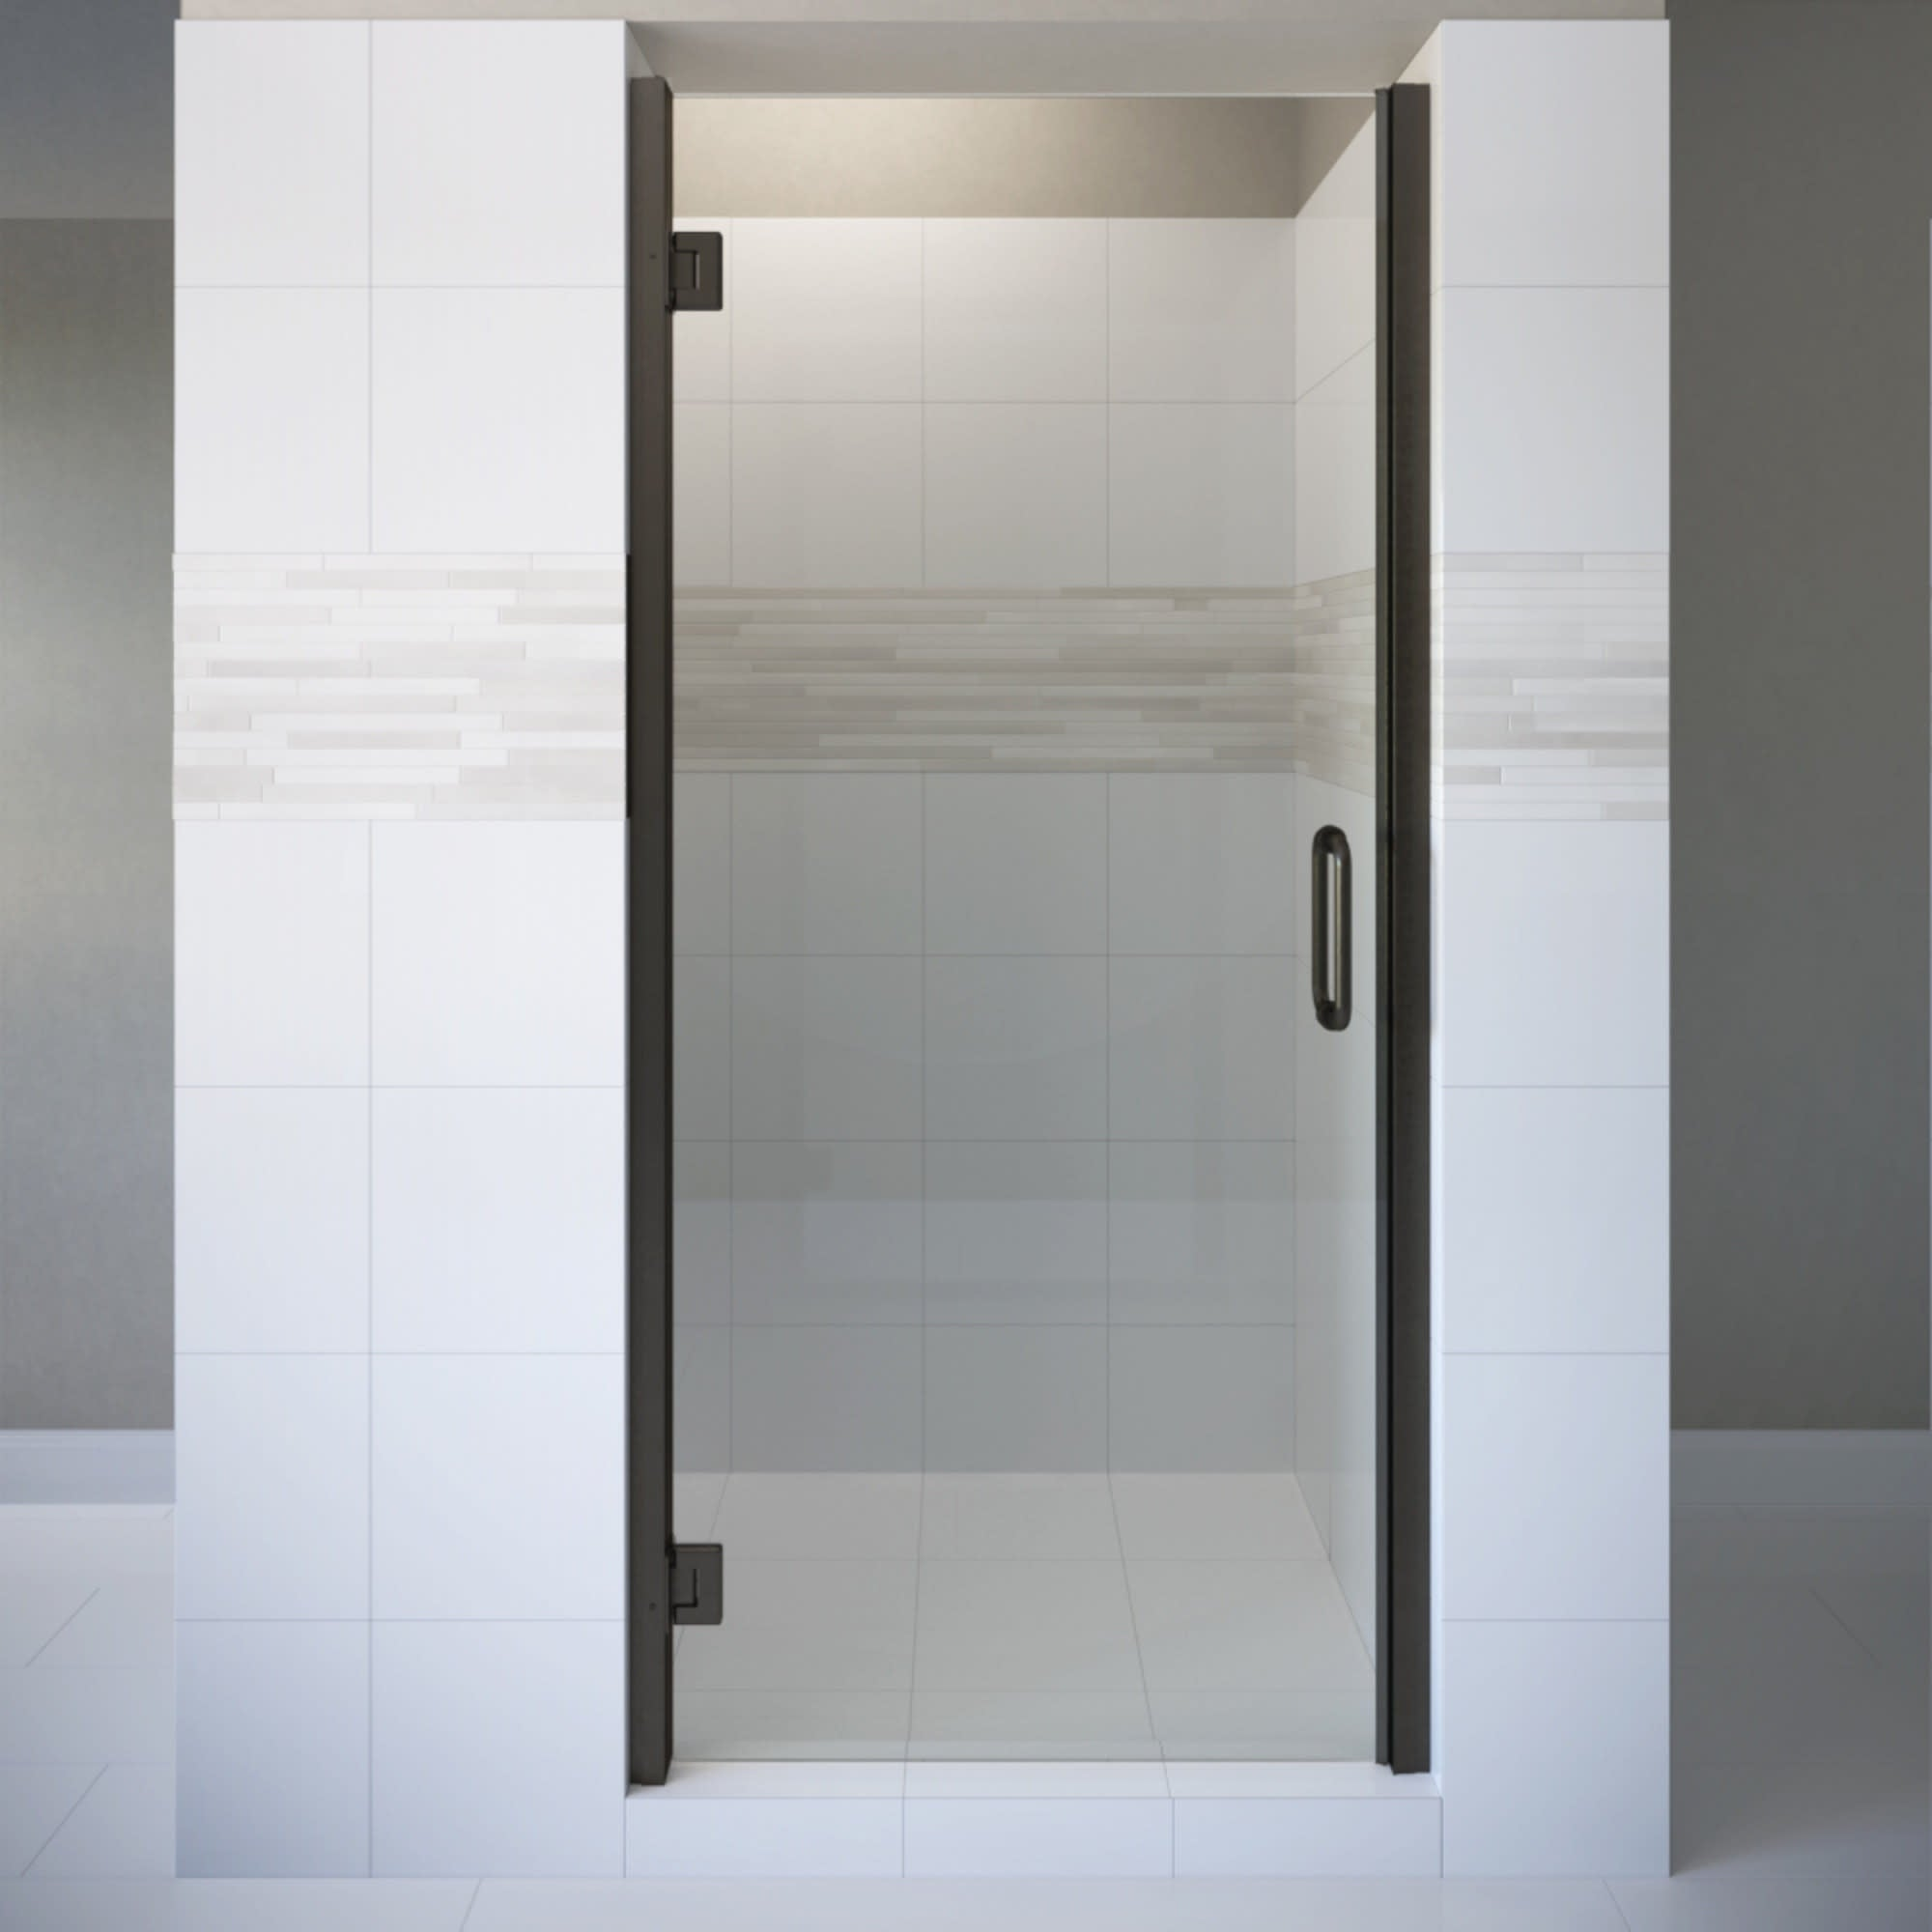 Basco Copa00a3472cl Coppia 72 High X 34 9 16 Wide Hinged Frameless Shower Door